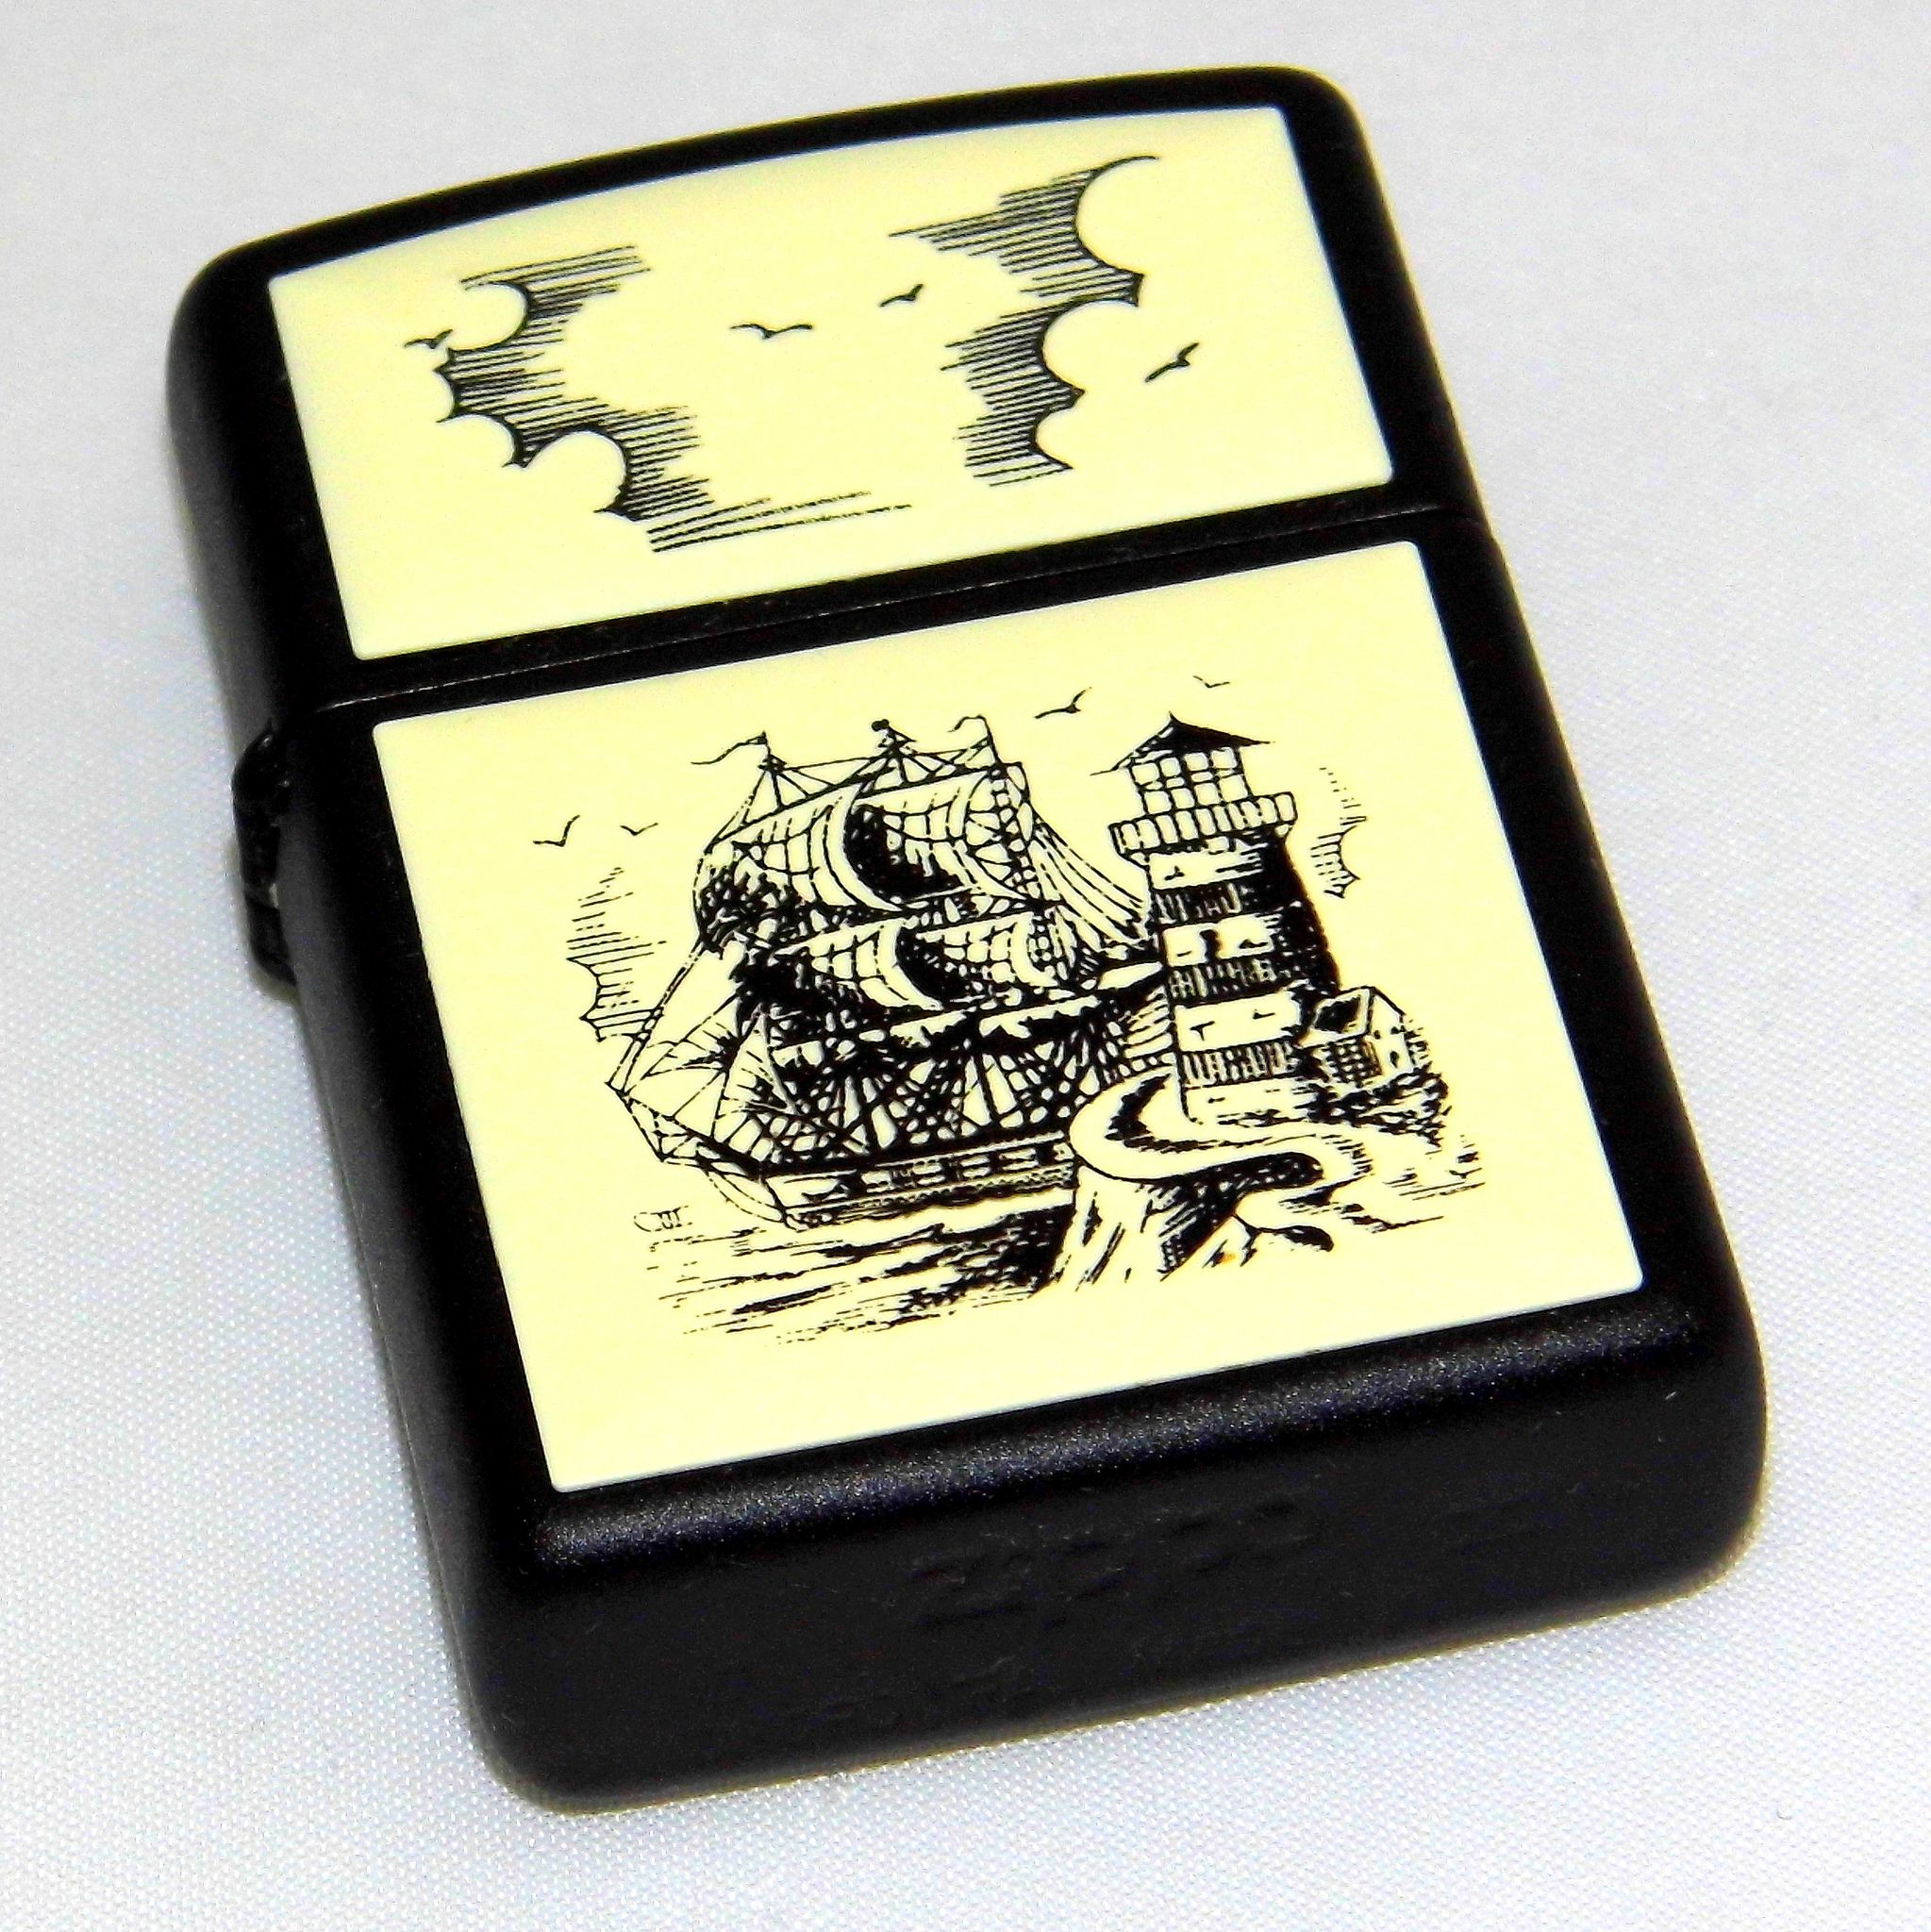 Zippo Lighter Collection Scrimshaw Design Ship Lighthouse Made In Usa Date Code H Xi Circa 1995 Zippo Zippo Lighter Scrimshaw